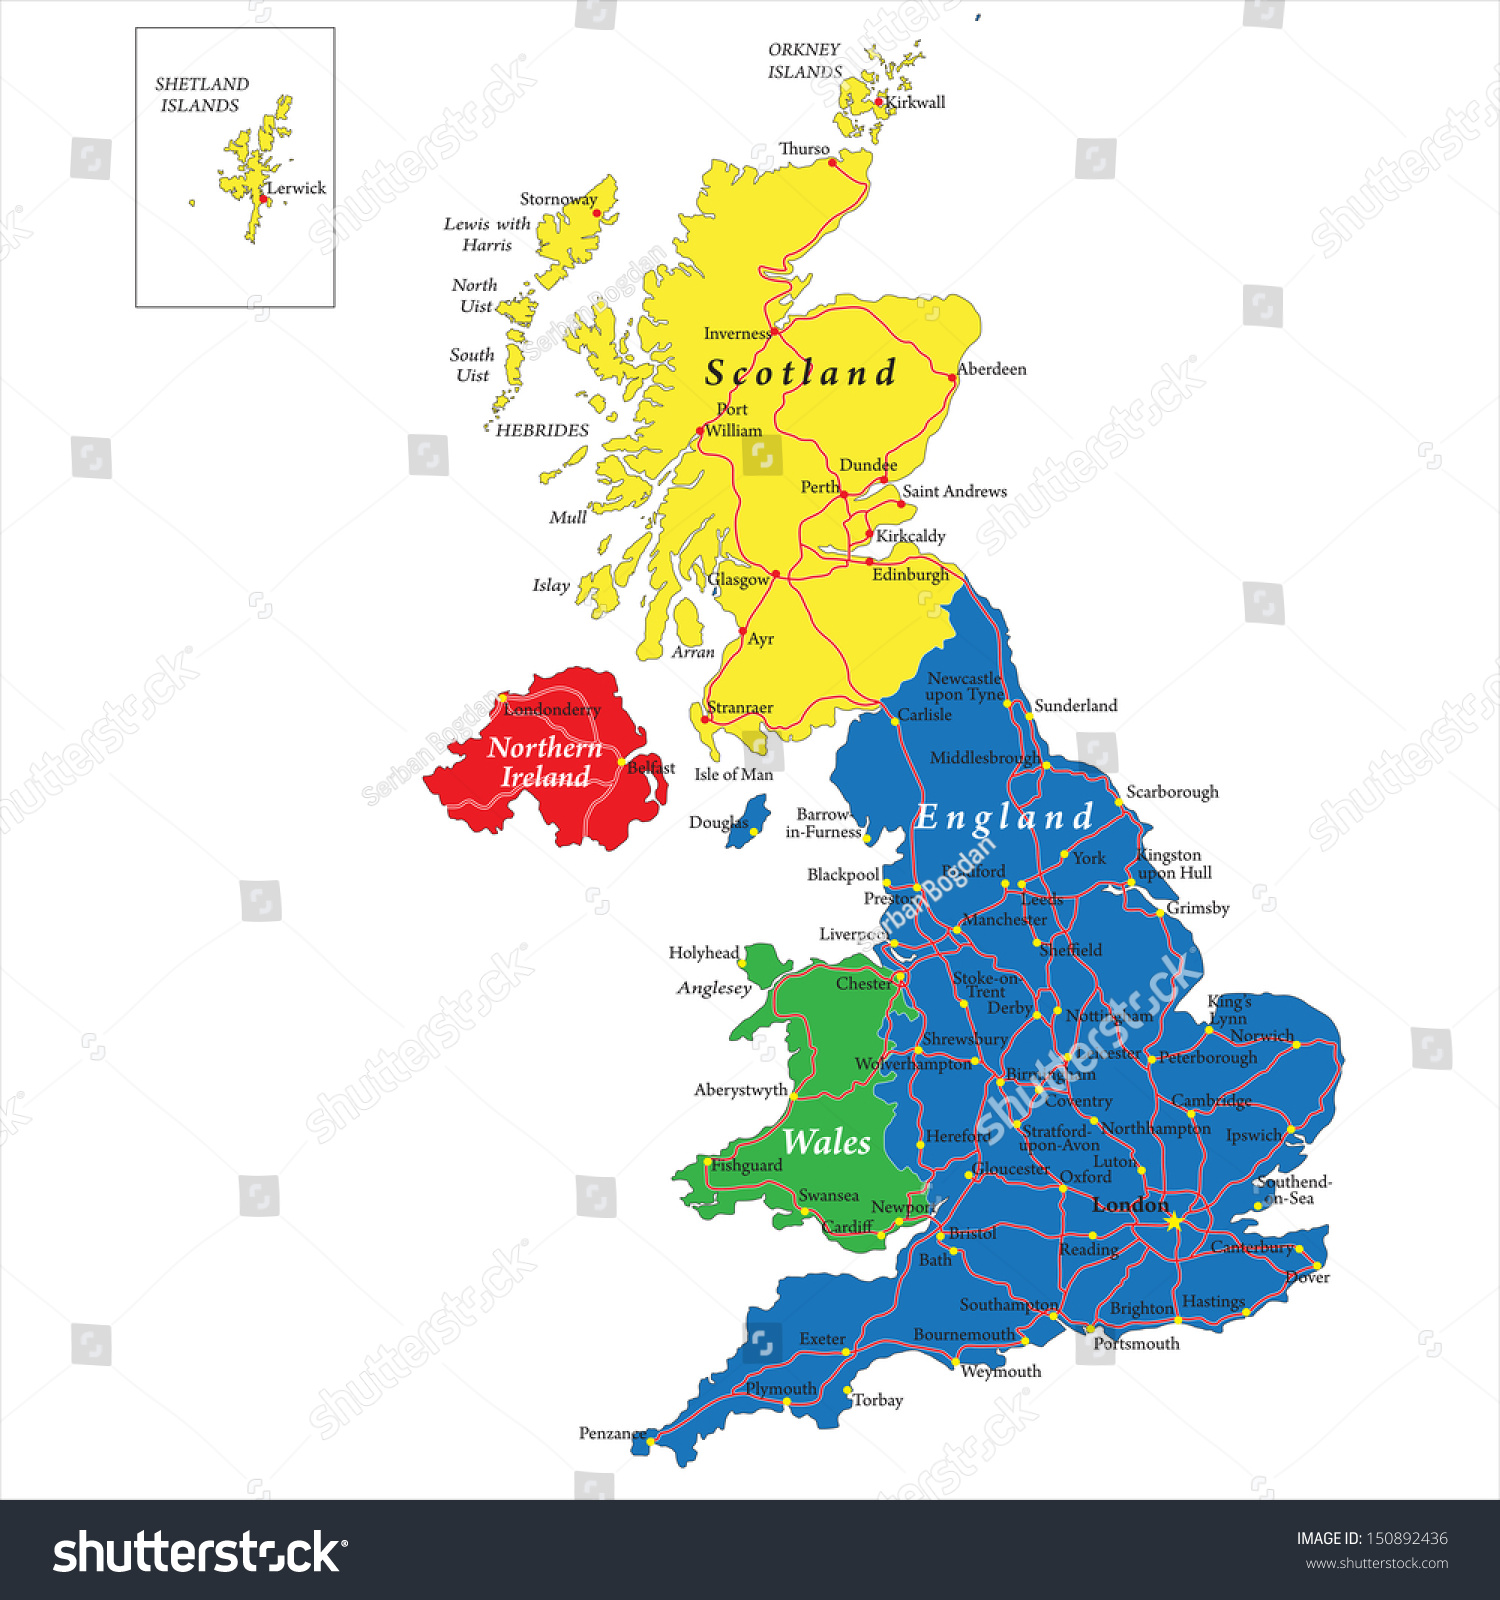 driving map of england and scotland you can see a map of many